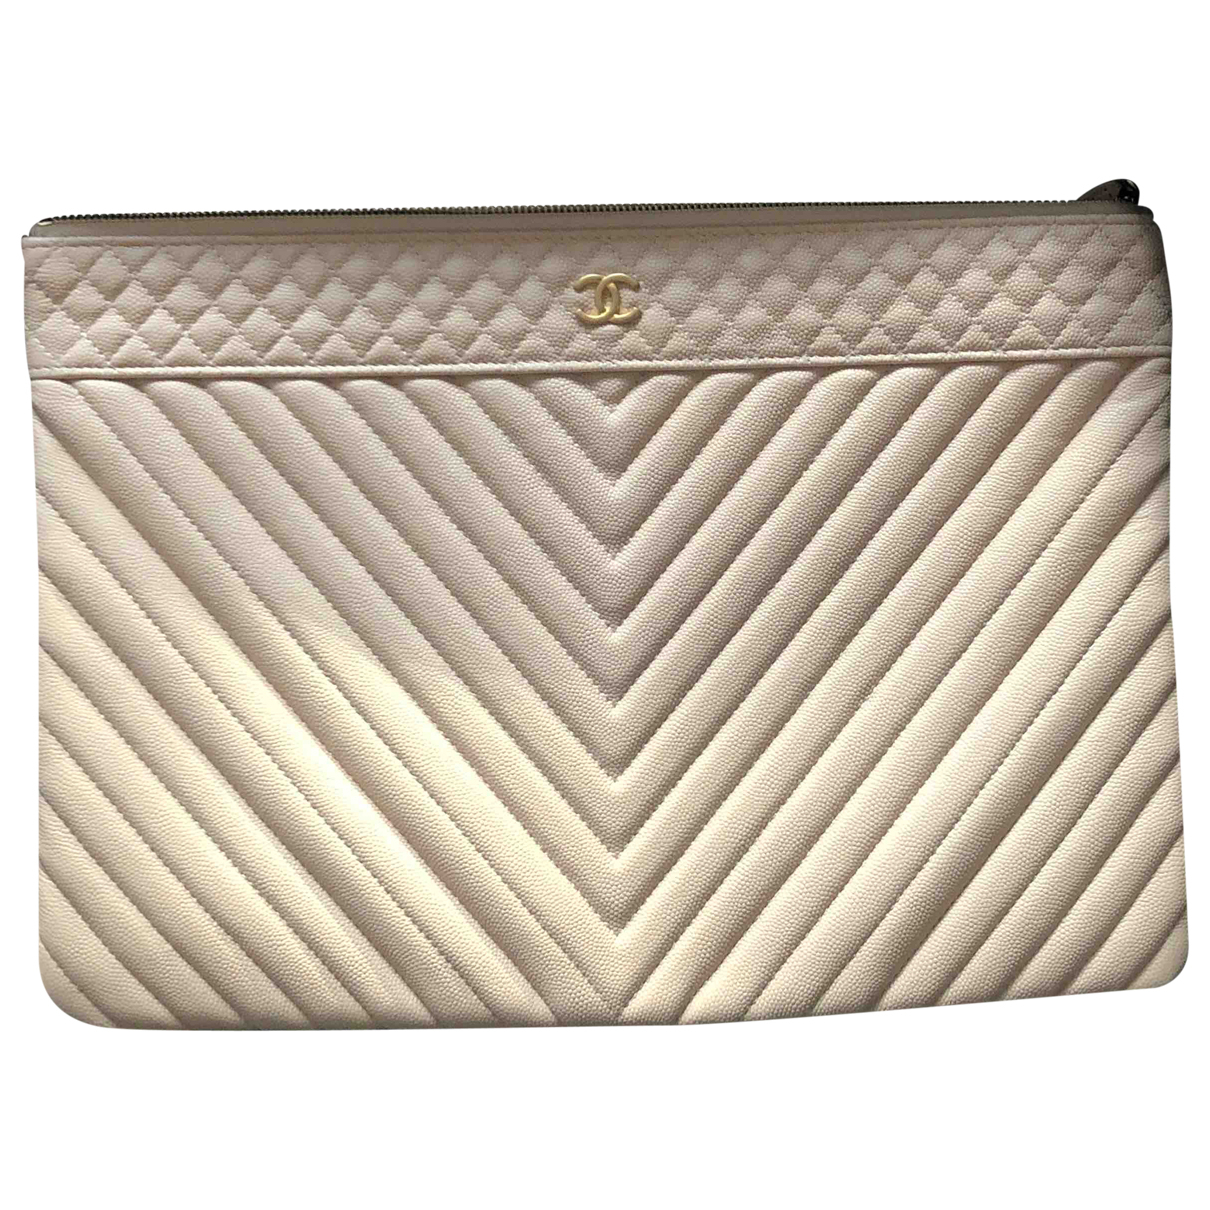 Chanel \N Clutch in  Beige Leder